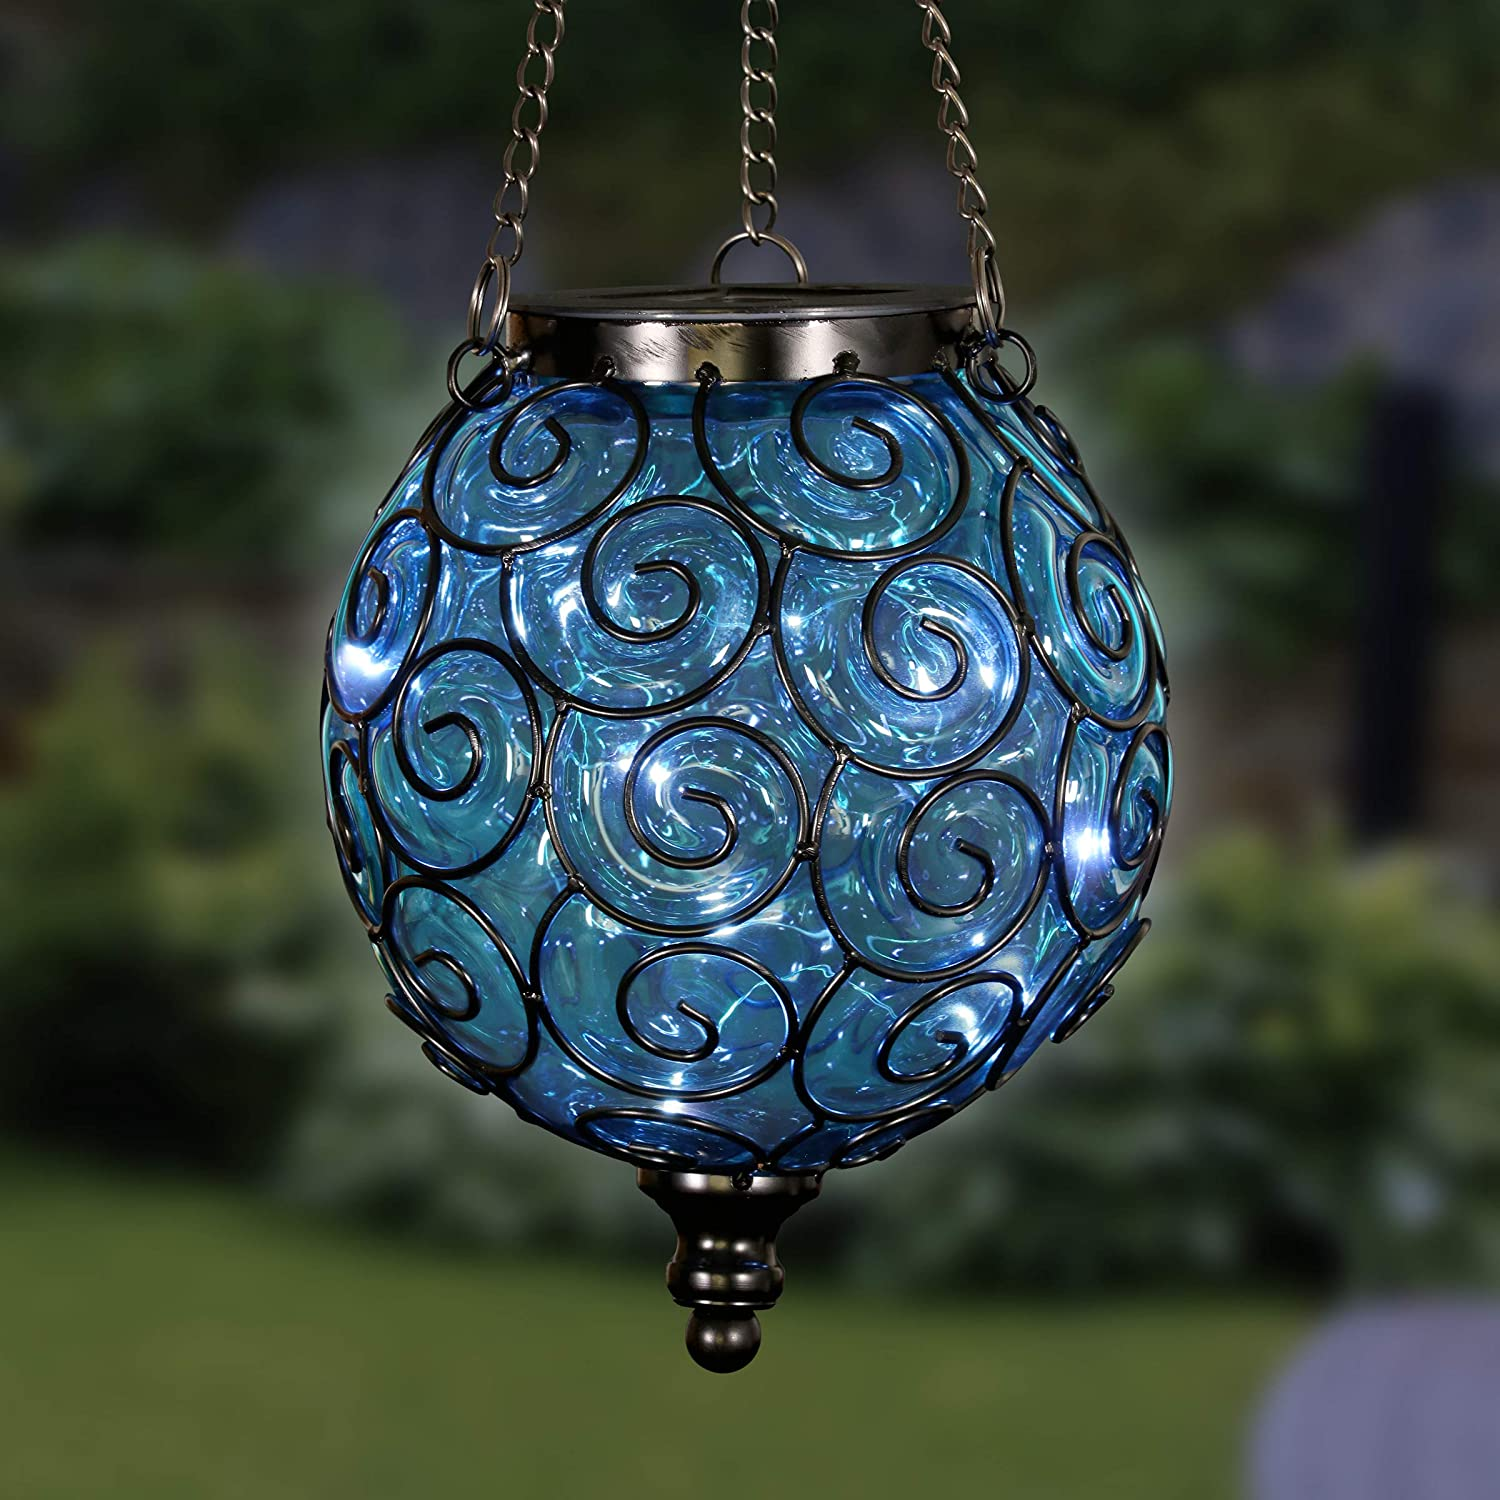 Exhart Solar Hanging Lantern, Handblown Blue Glass – Round Hanging Lantern Light w/ 12 LED Firefly String Lights, Metal & Glass Lantern Decorative Orb for Outdoor Décor (7in l x 7in w x 20in h)